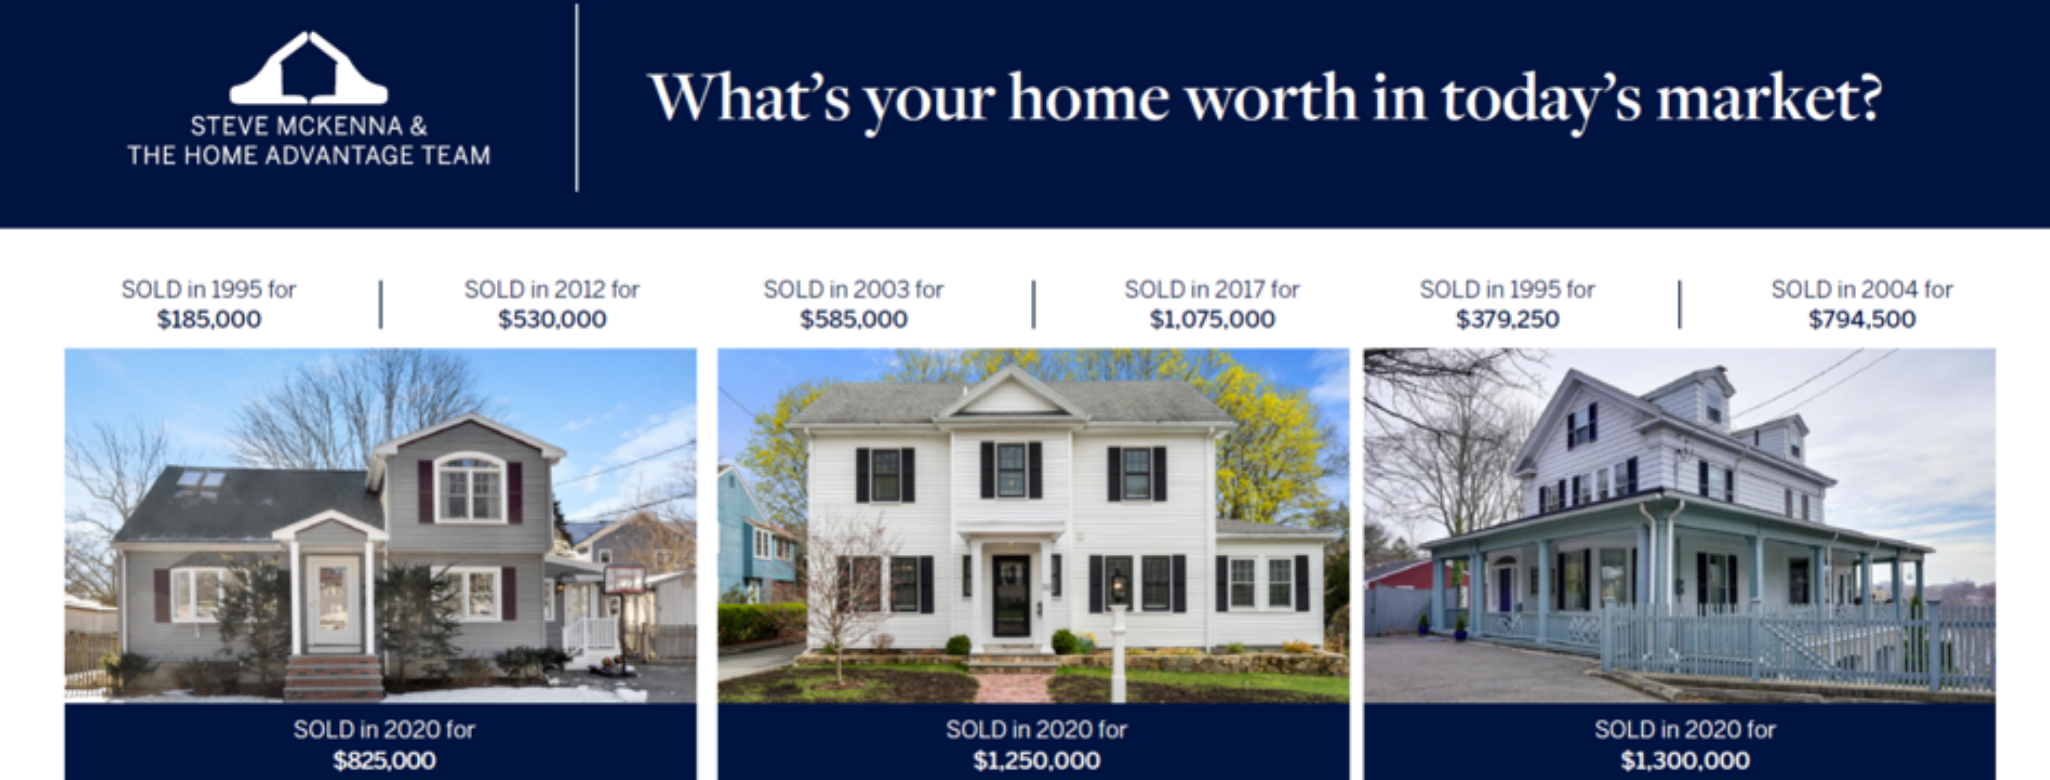 What's your home worth in today's competitive market?